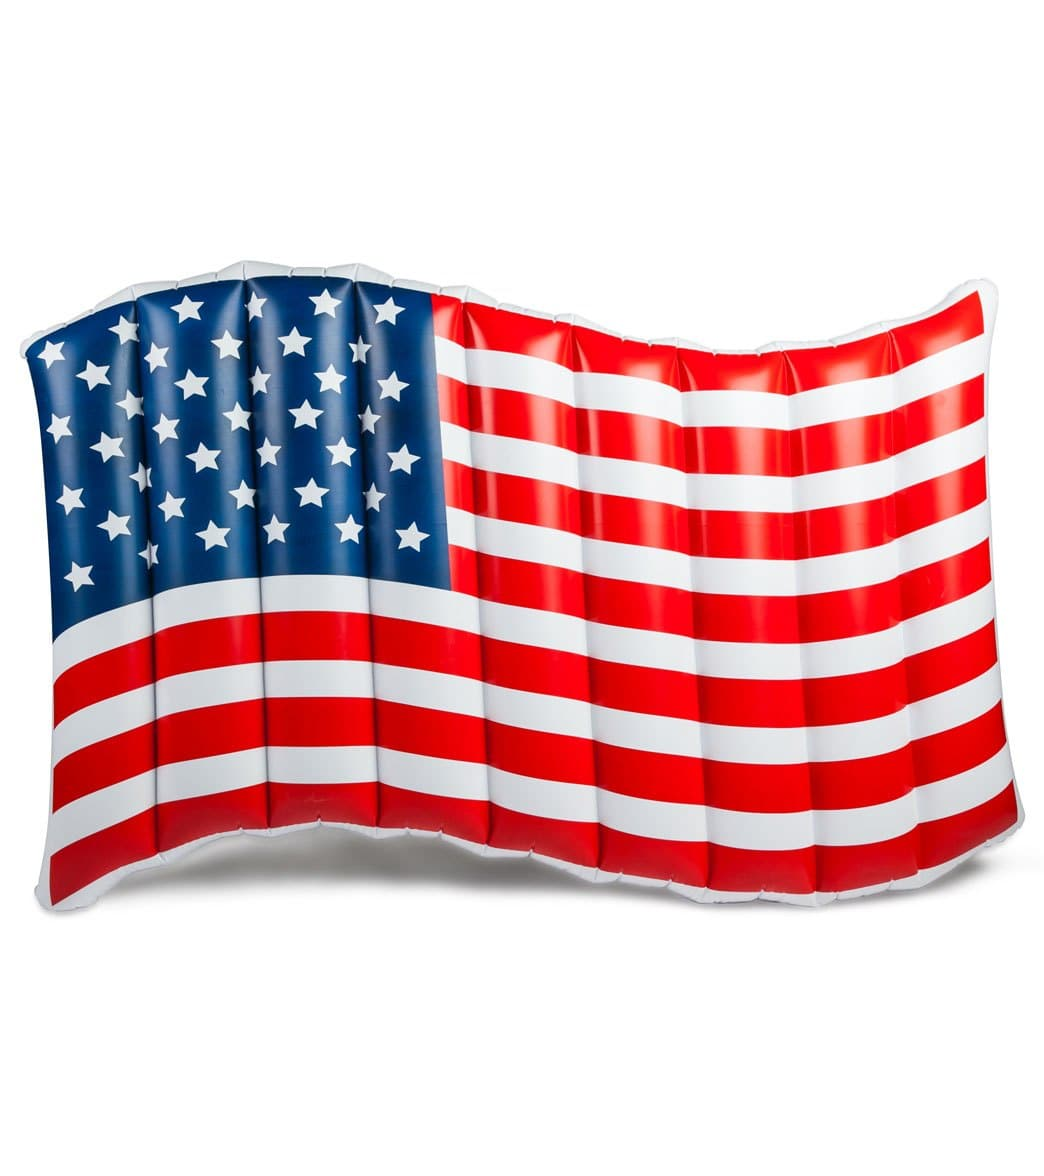 Big Mouth Toys Waving American Flag Float At Swimoutlet Com